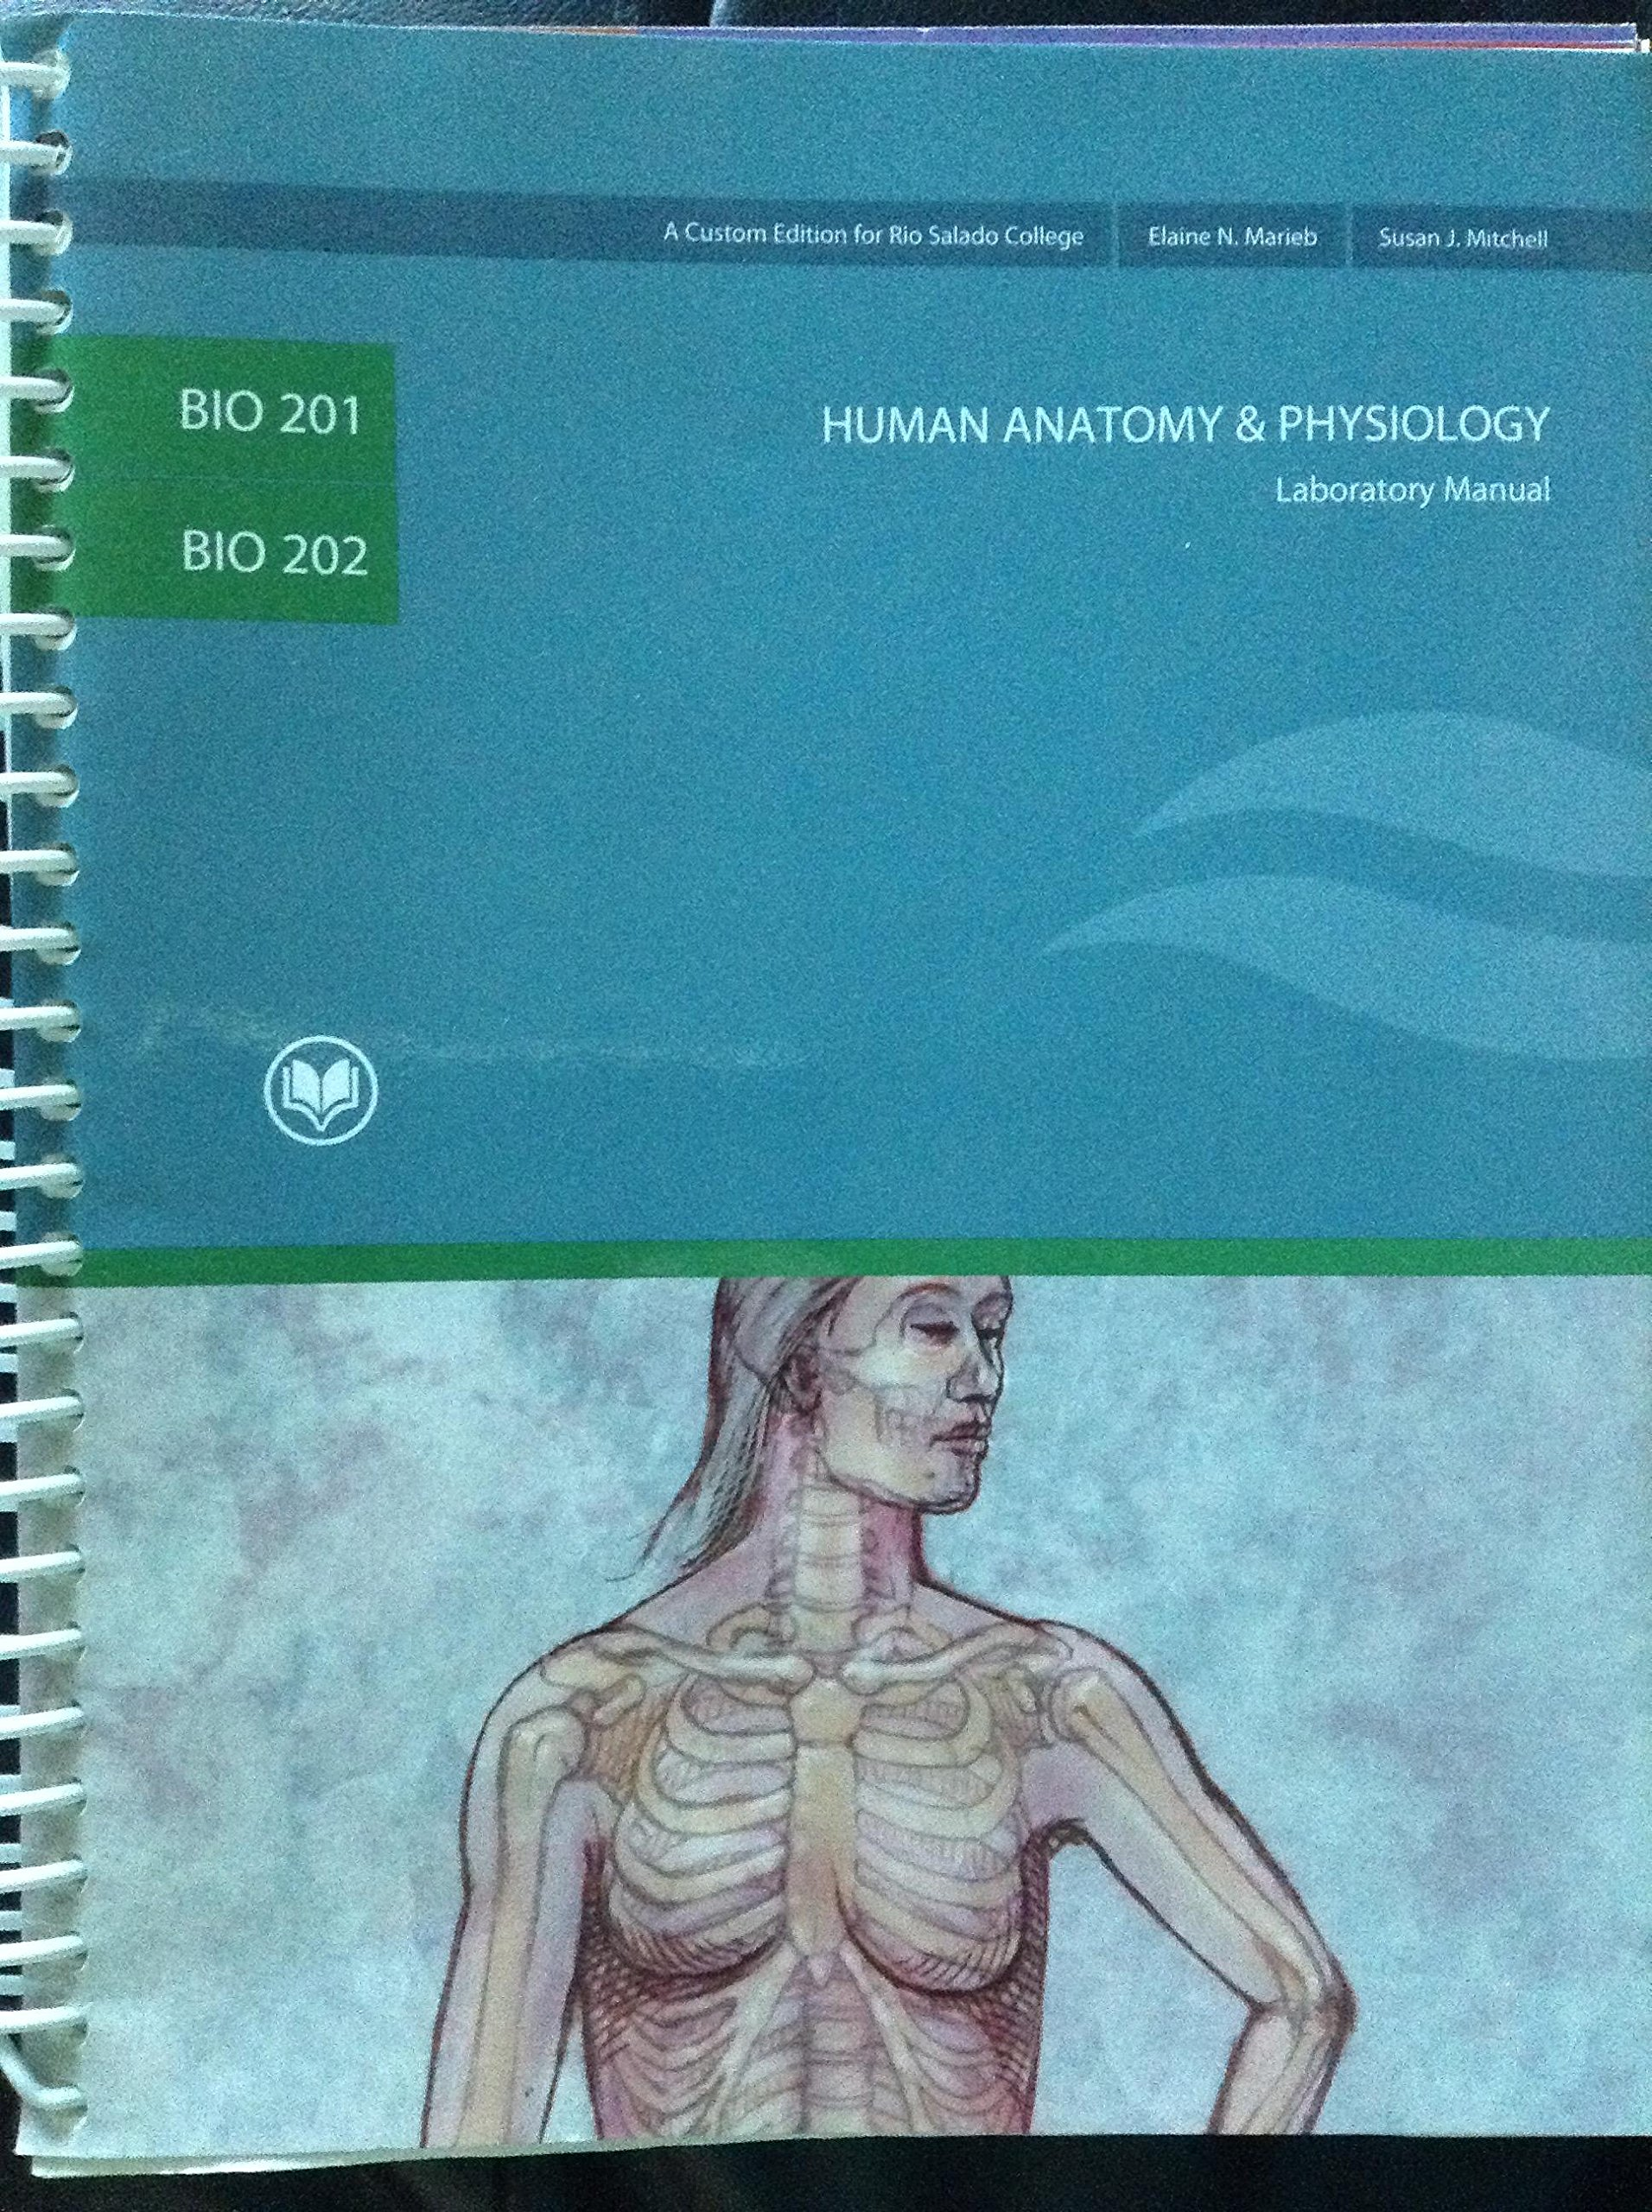 Human anatomy physiology bio 201 bio 202 custom edition for human anatomy physiology bio 201 bio 202 custom edition for rio salado college 9780536502896 amazon books fandeluxe Image collections